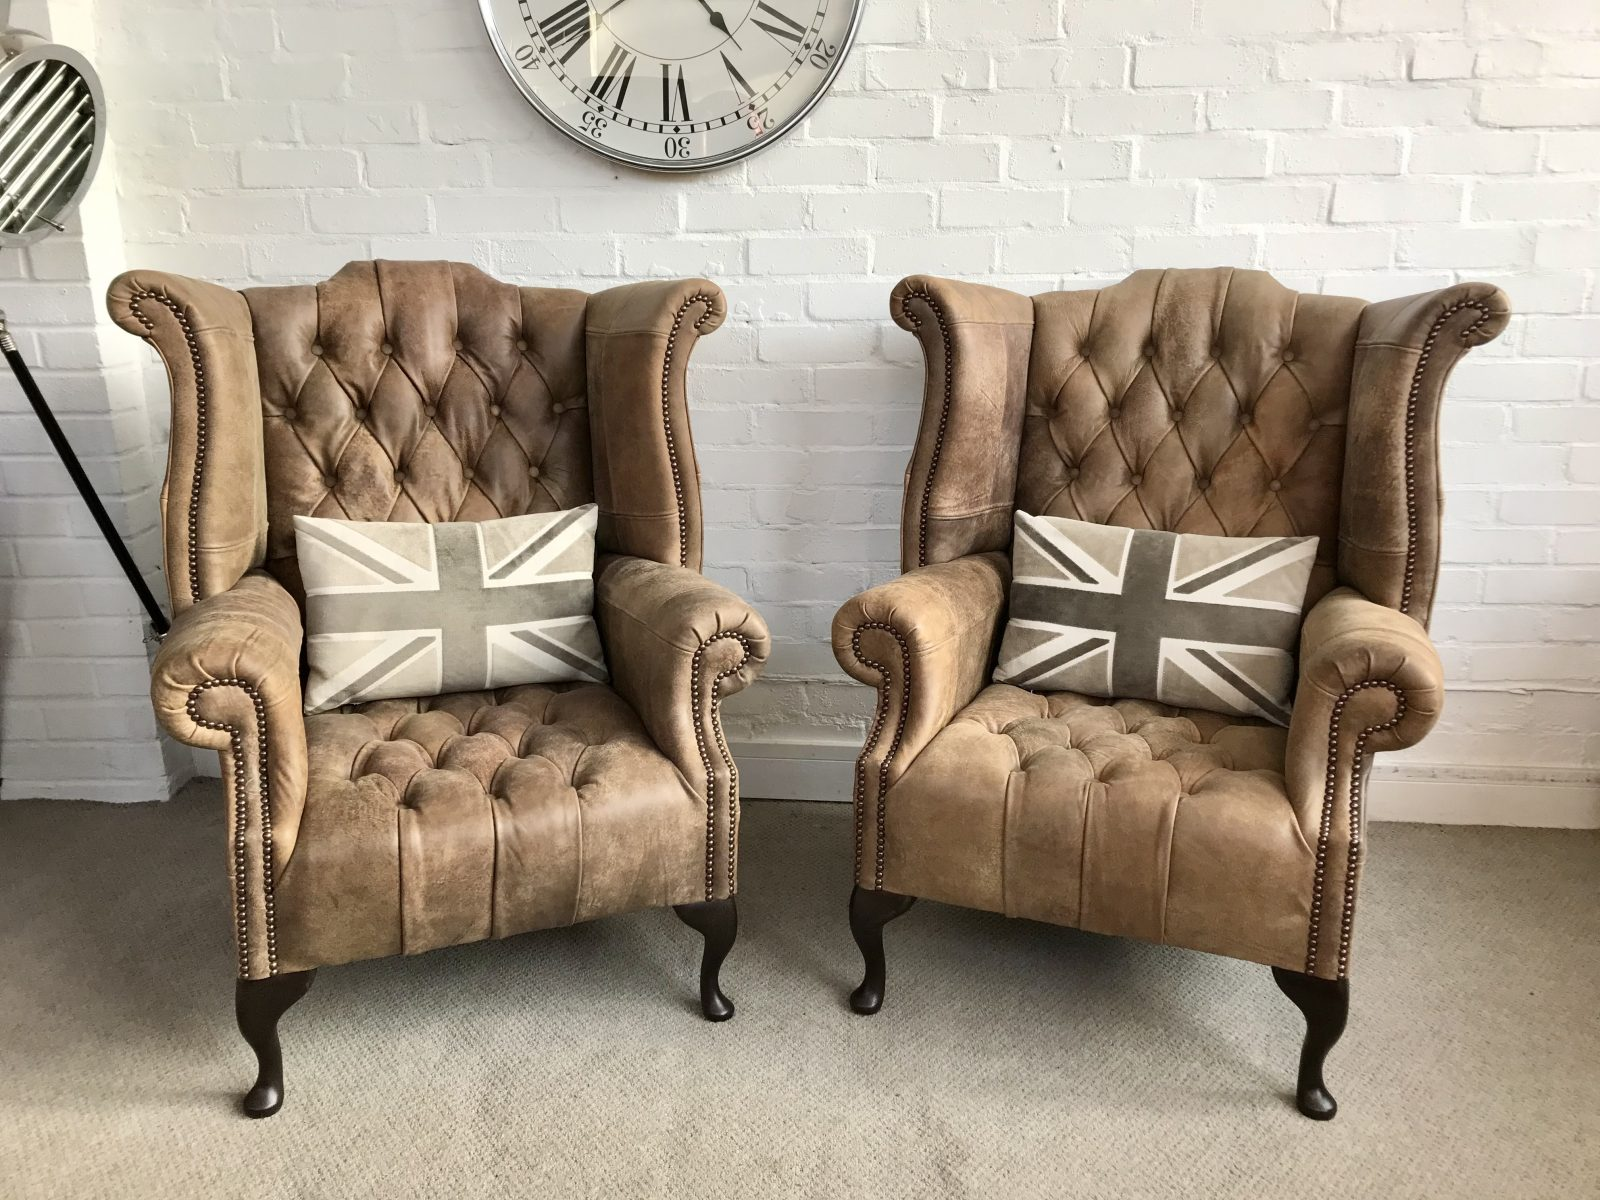 Stunning New Queen Anne Wingback Armchairs.